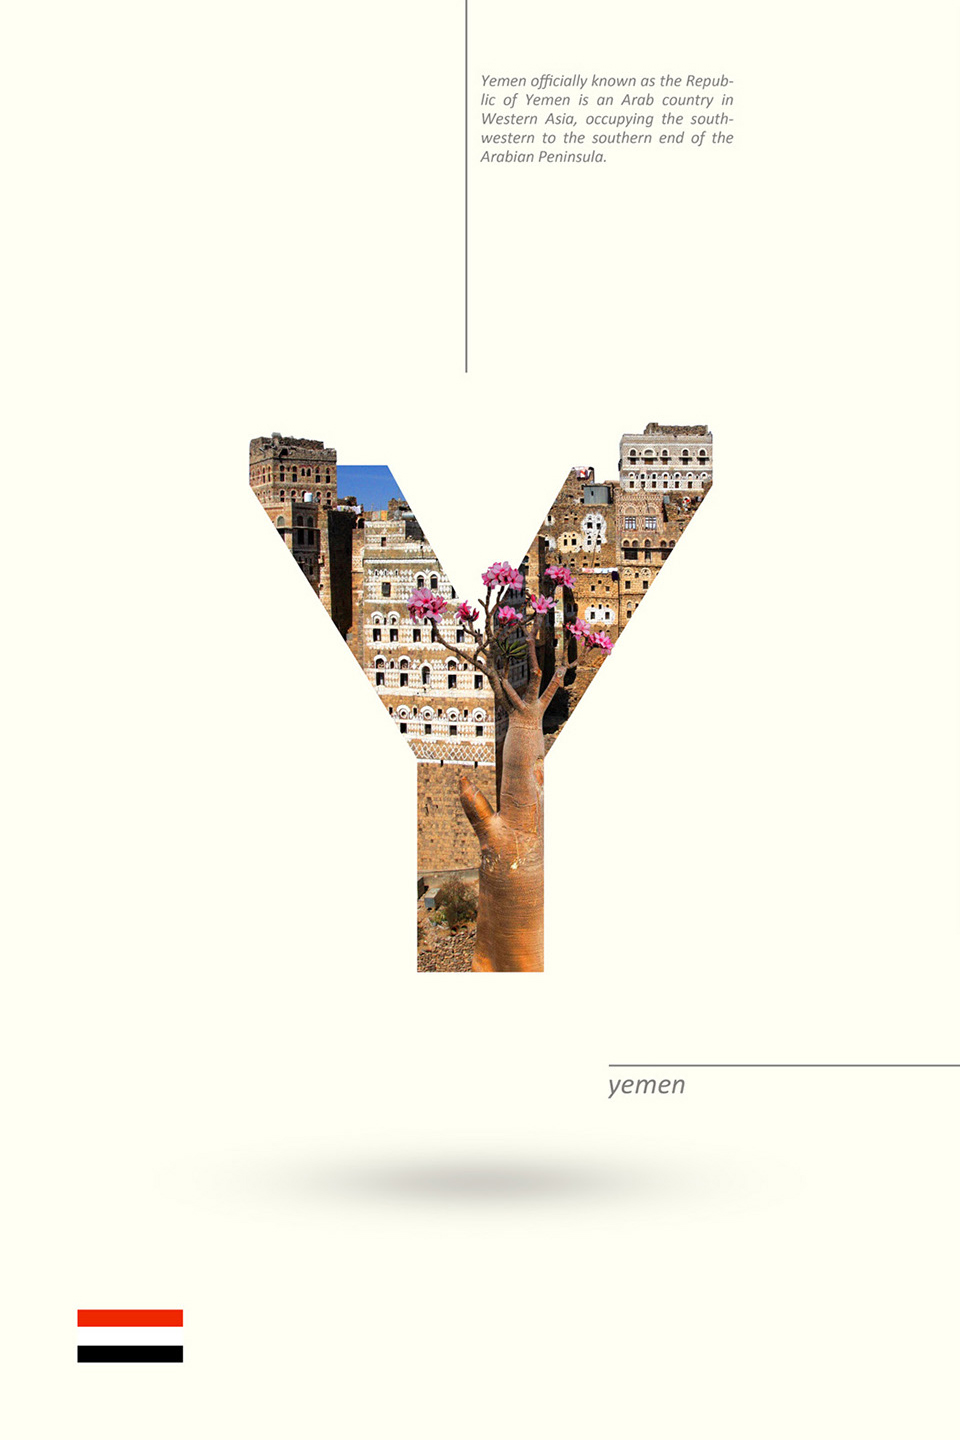 Beautiful Alphabet Series Of Countries And Their Iconic Landmarks - Yemen